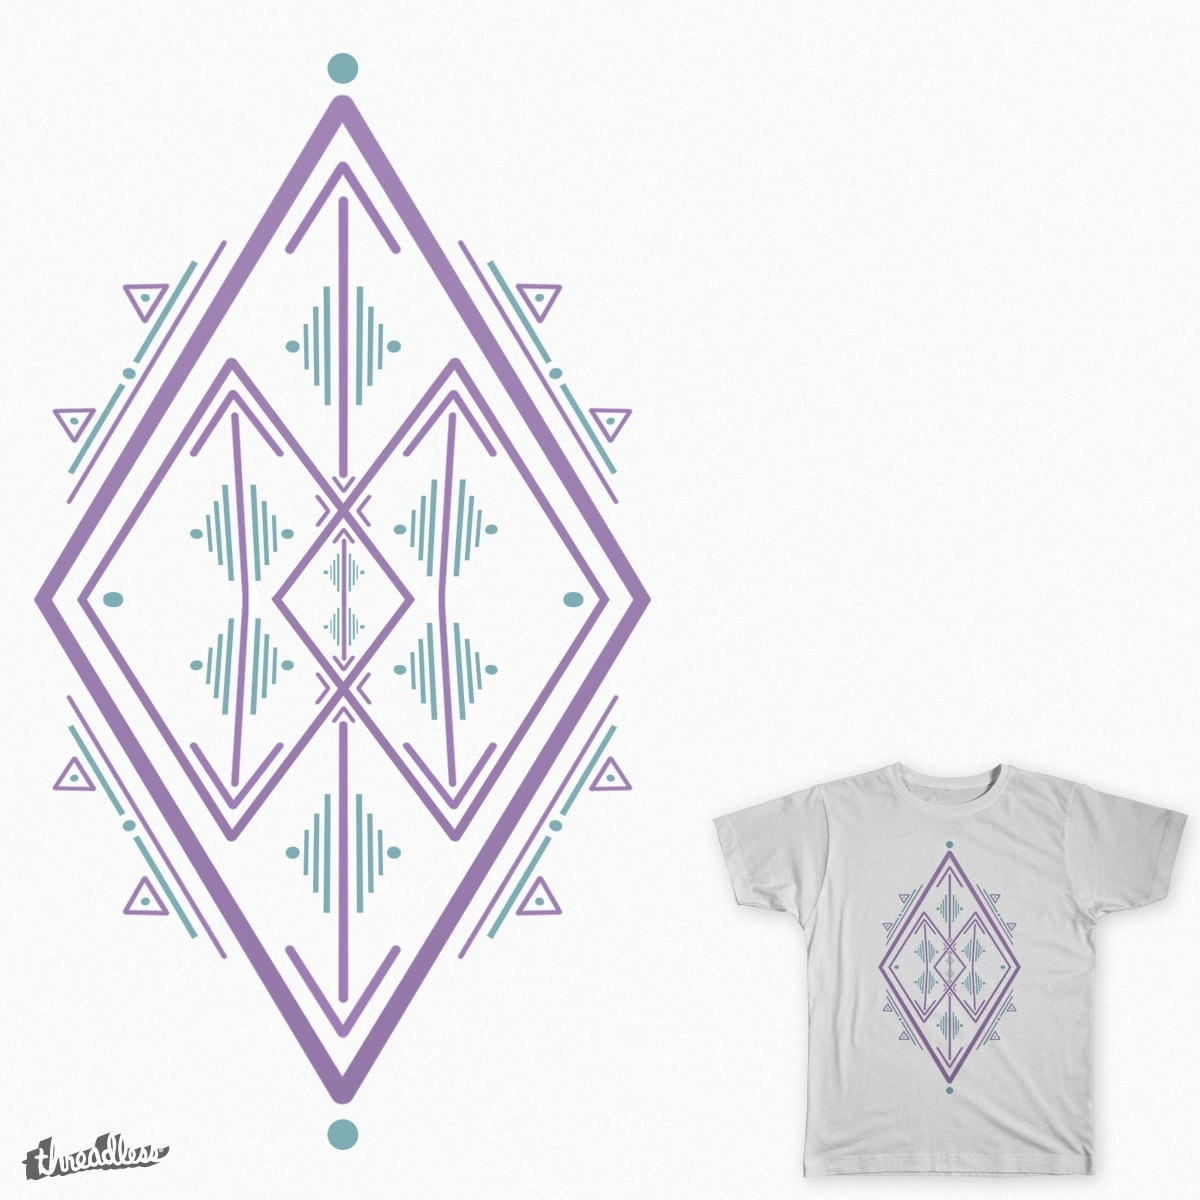 The Abstract Diamond. by TheArtistDude on Threadless